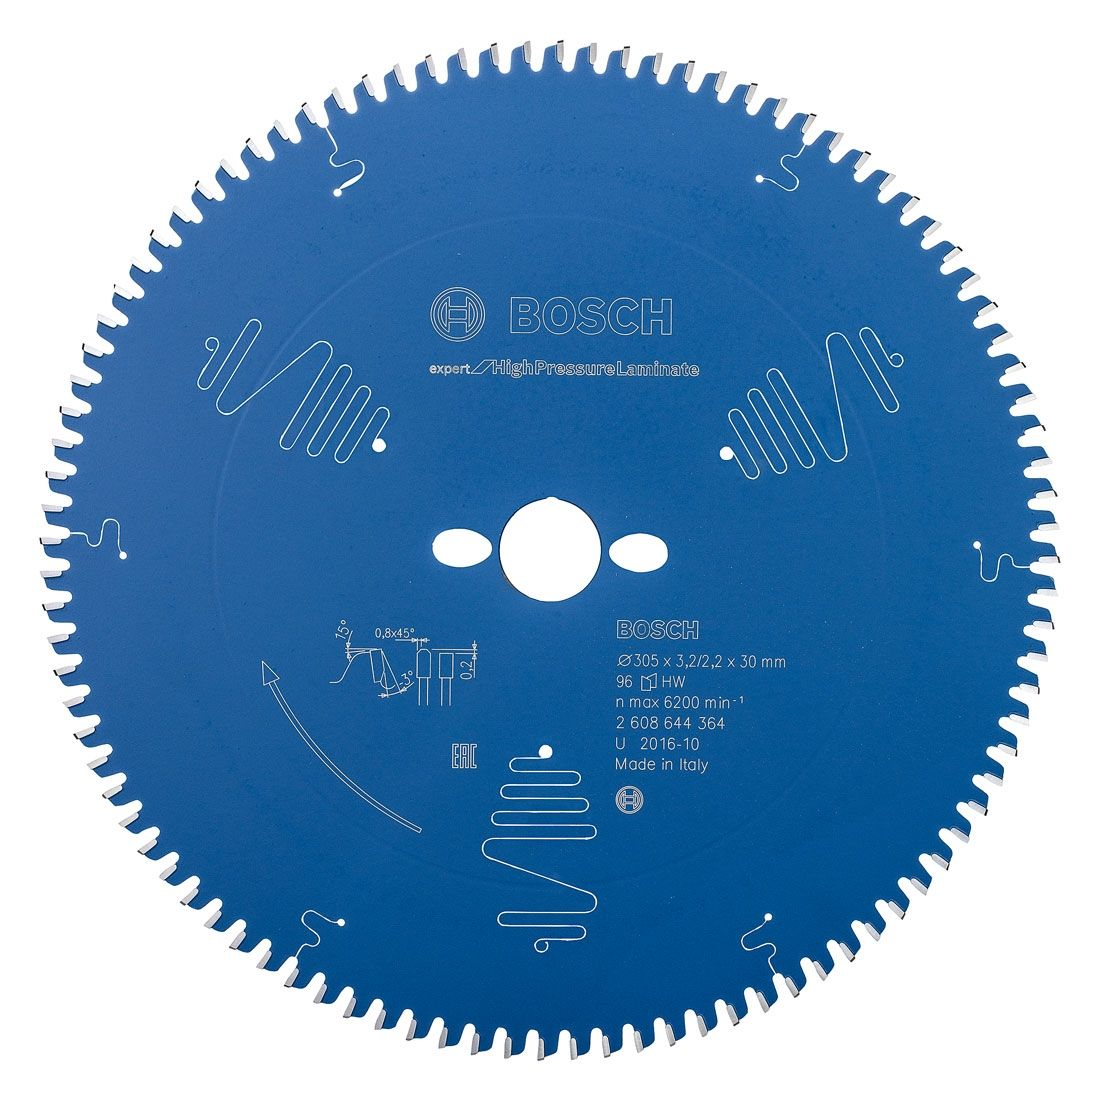 Bosch Expert Mitre Saw Blade For High, 10 Miter Saw Blade For Laminate Flooring